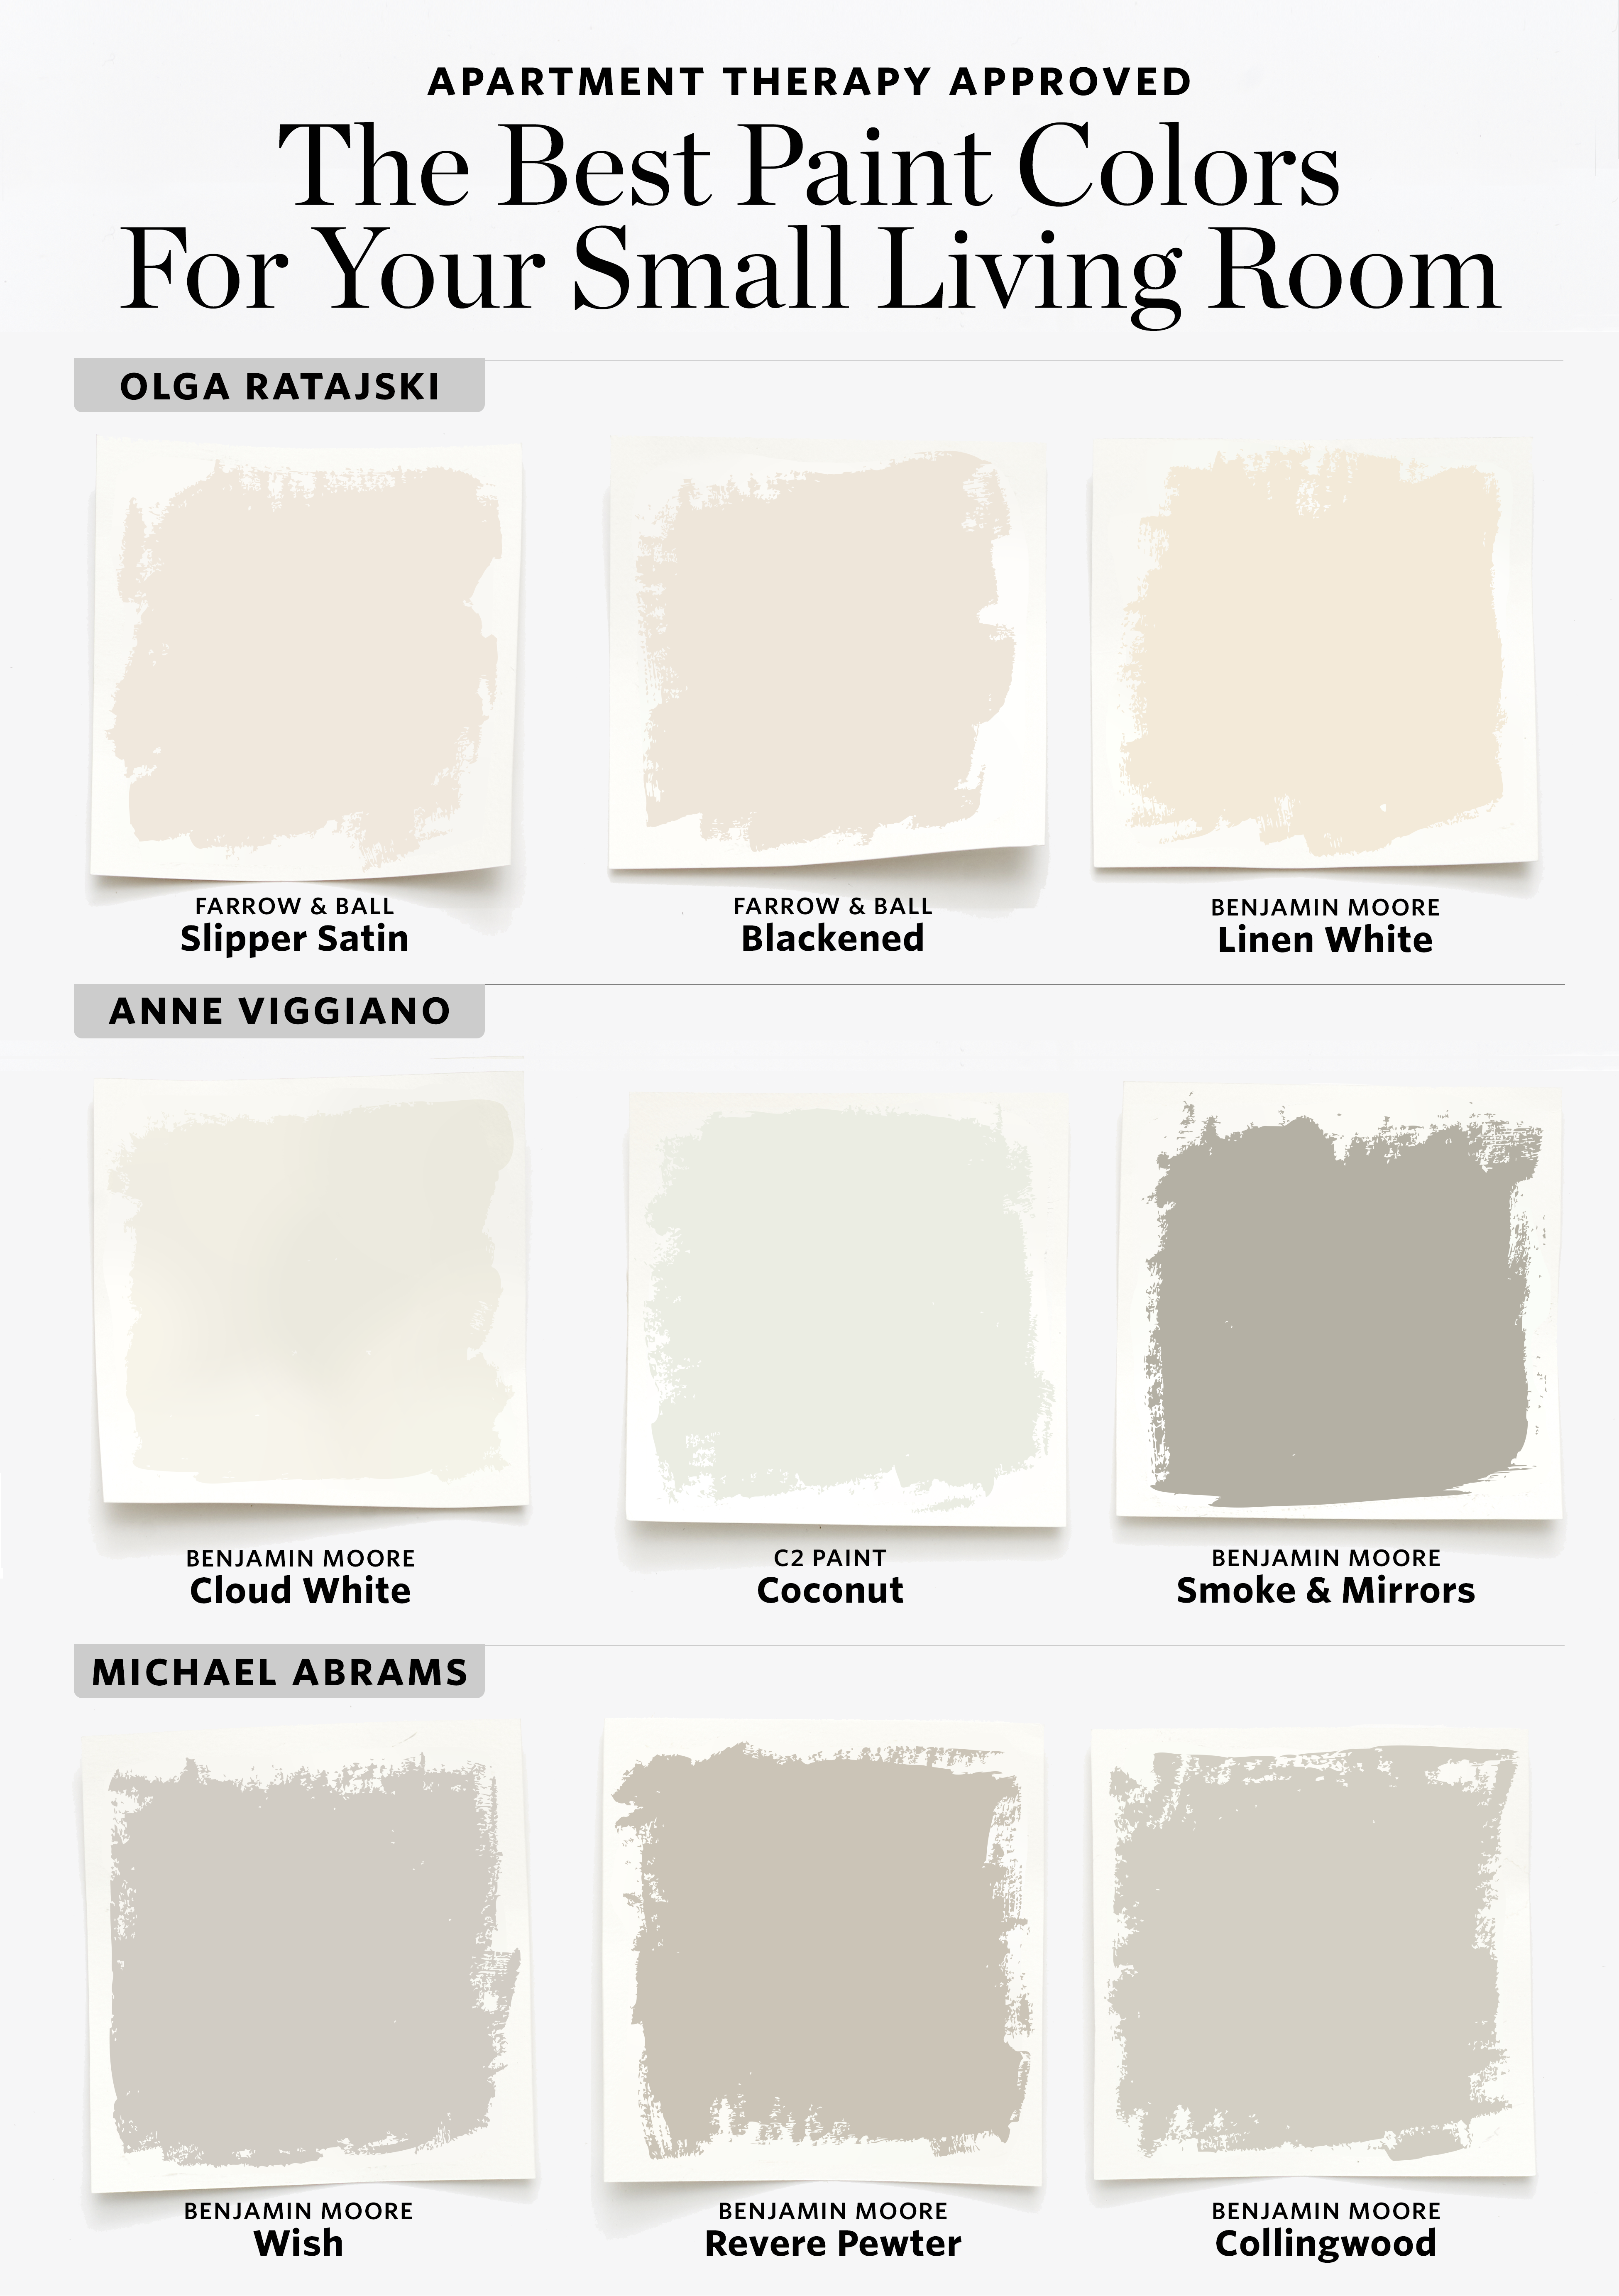 Best Paint Colors For Small Living Rooms Apartment Therapy